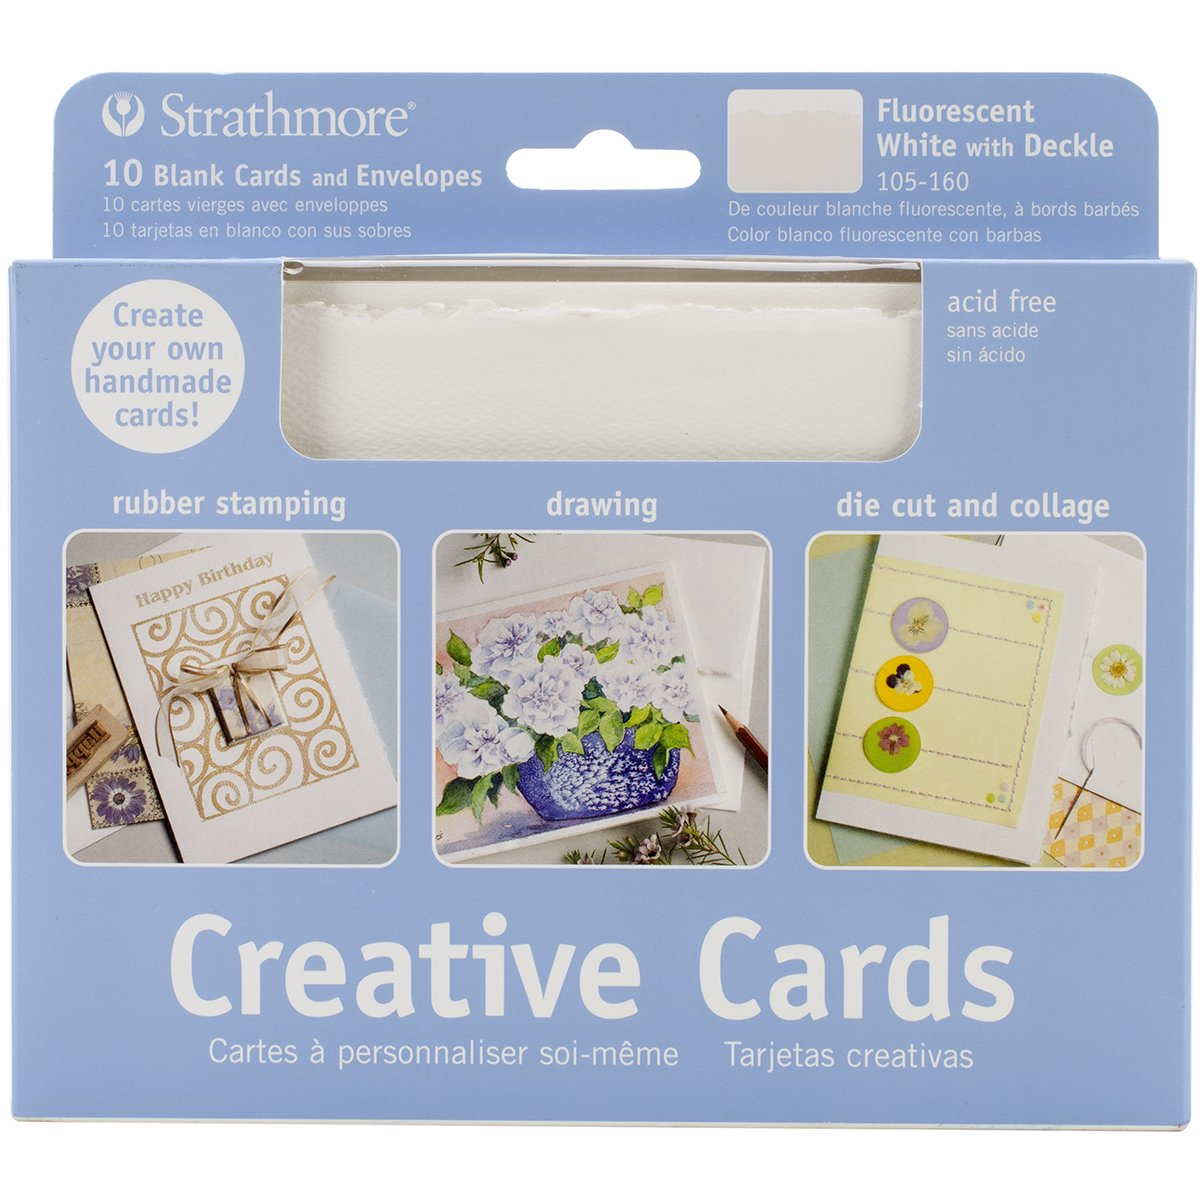 Amazon strathmore str 105 16 fluorescent white deckle card 20 amazon strathmore str 105 16 fluorescent white deckle card 20 pack arts crafts sewing m4hsunfo